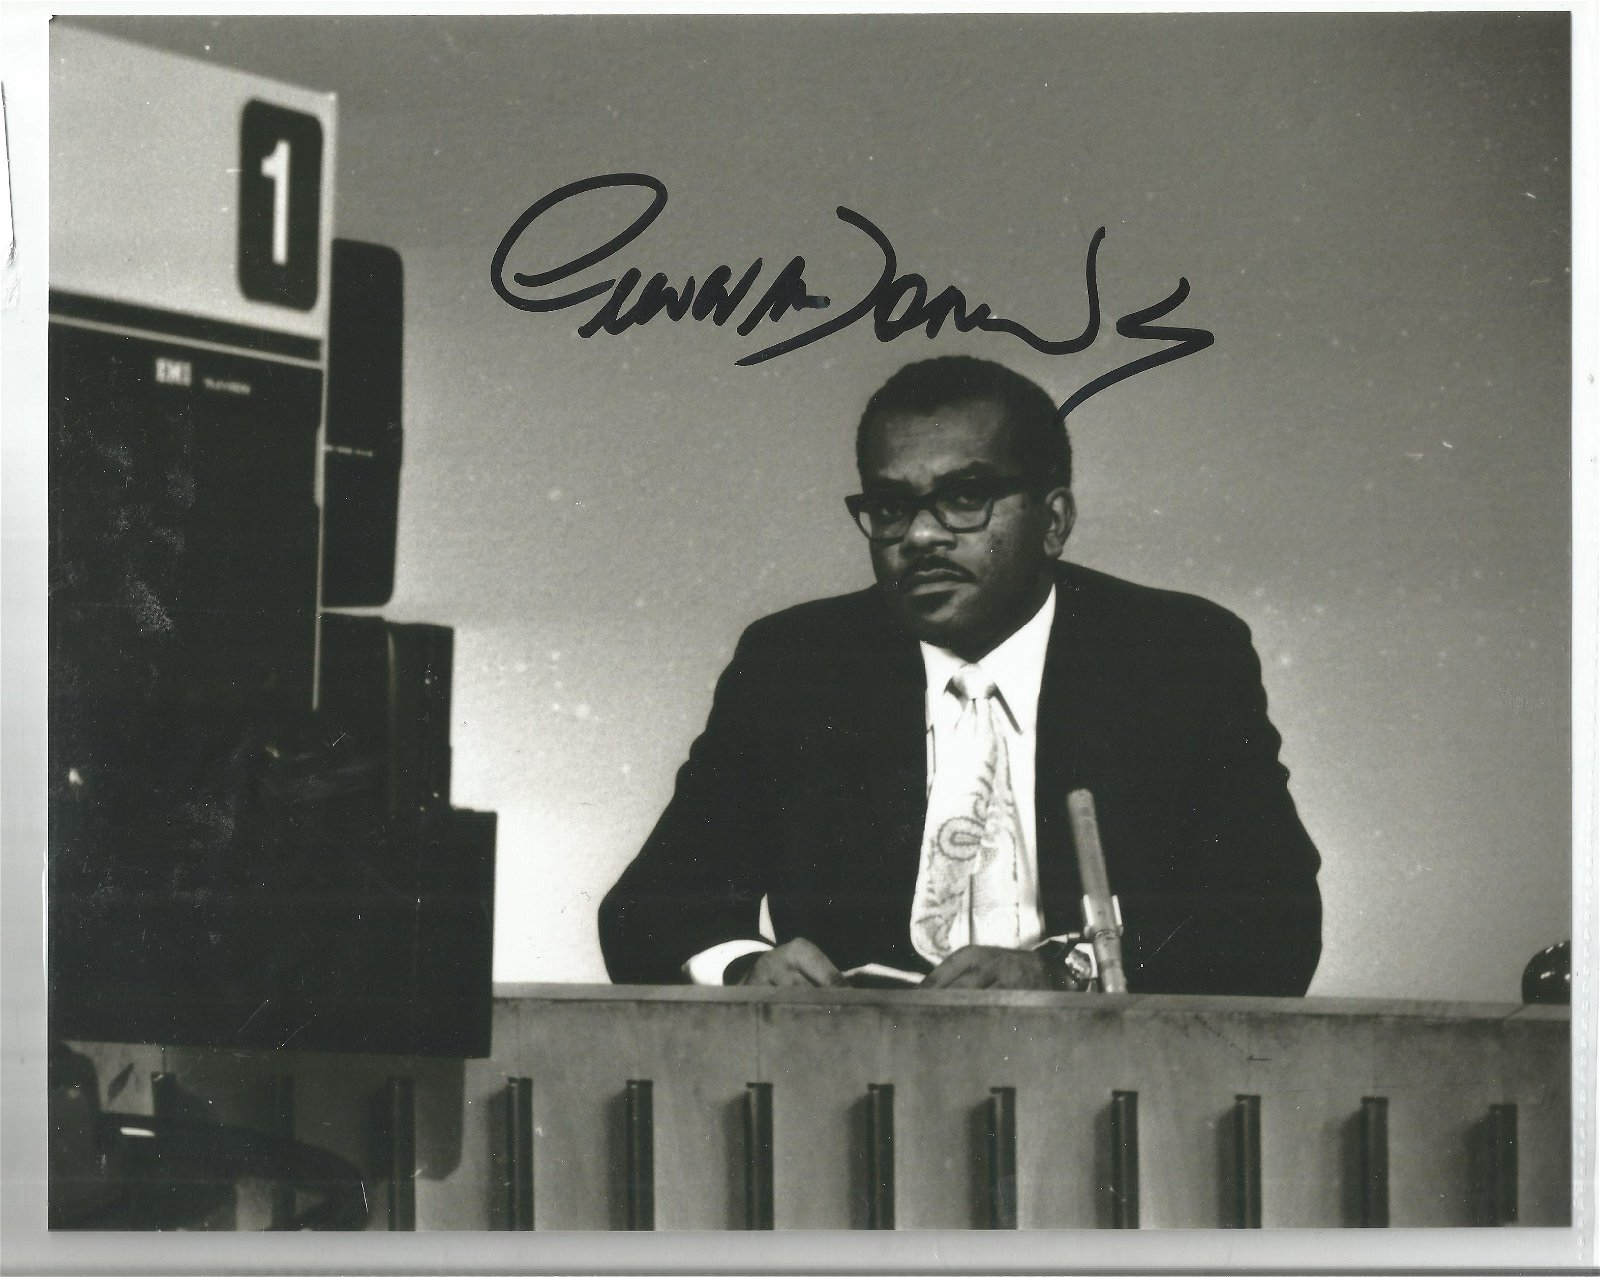 Trevor Mcdonald Newsreader Signed 8x10 Photo. We